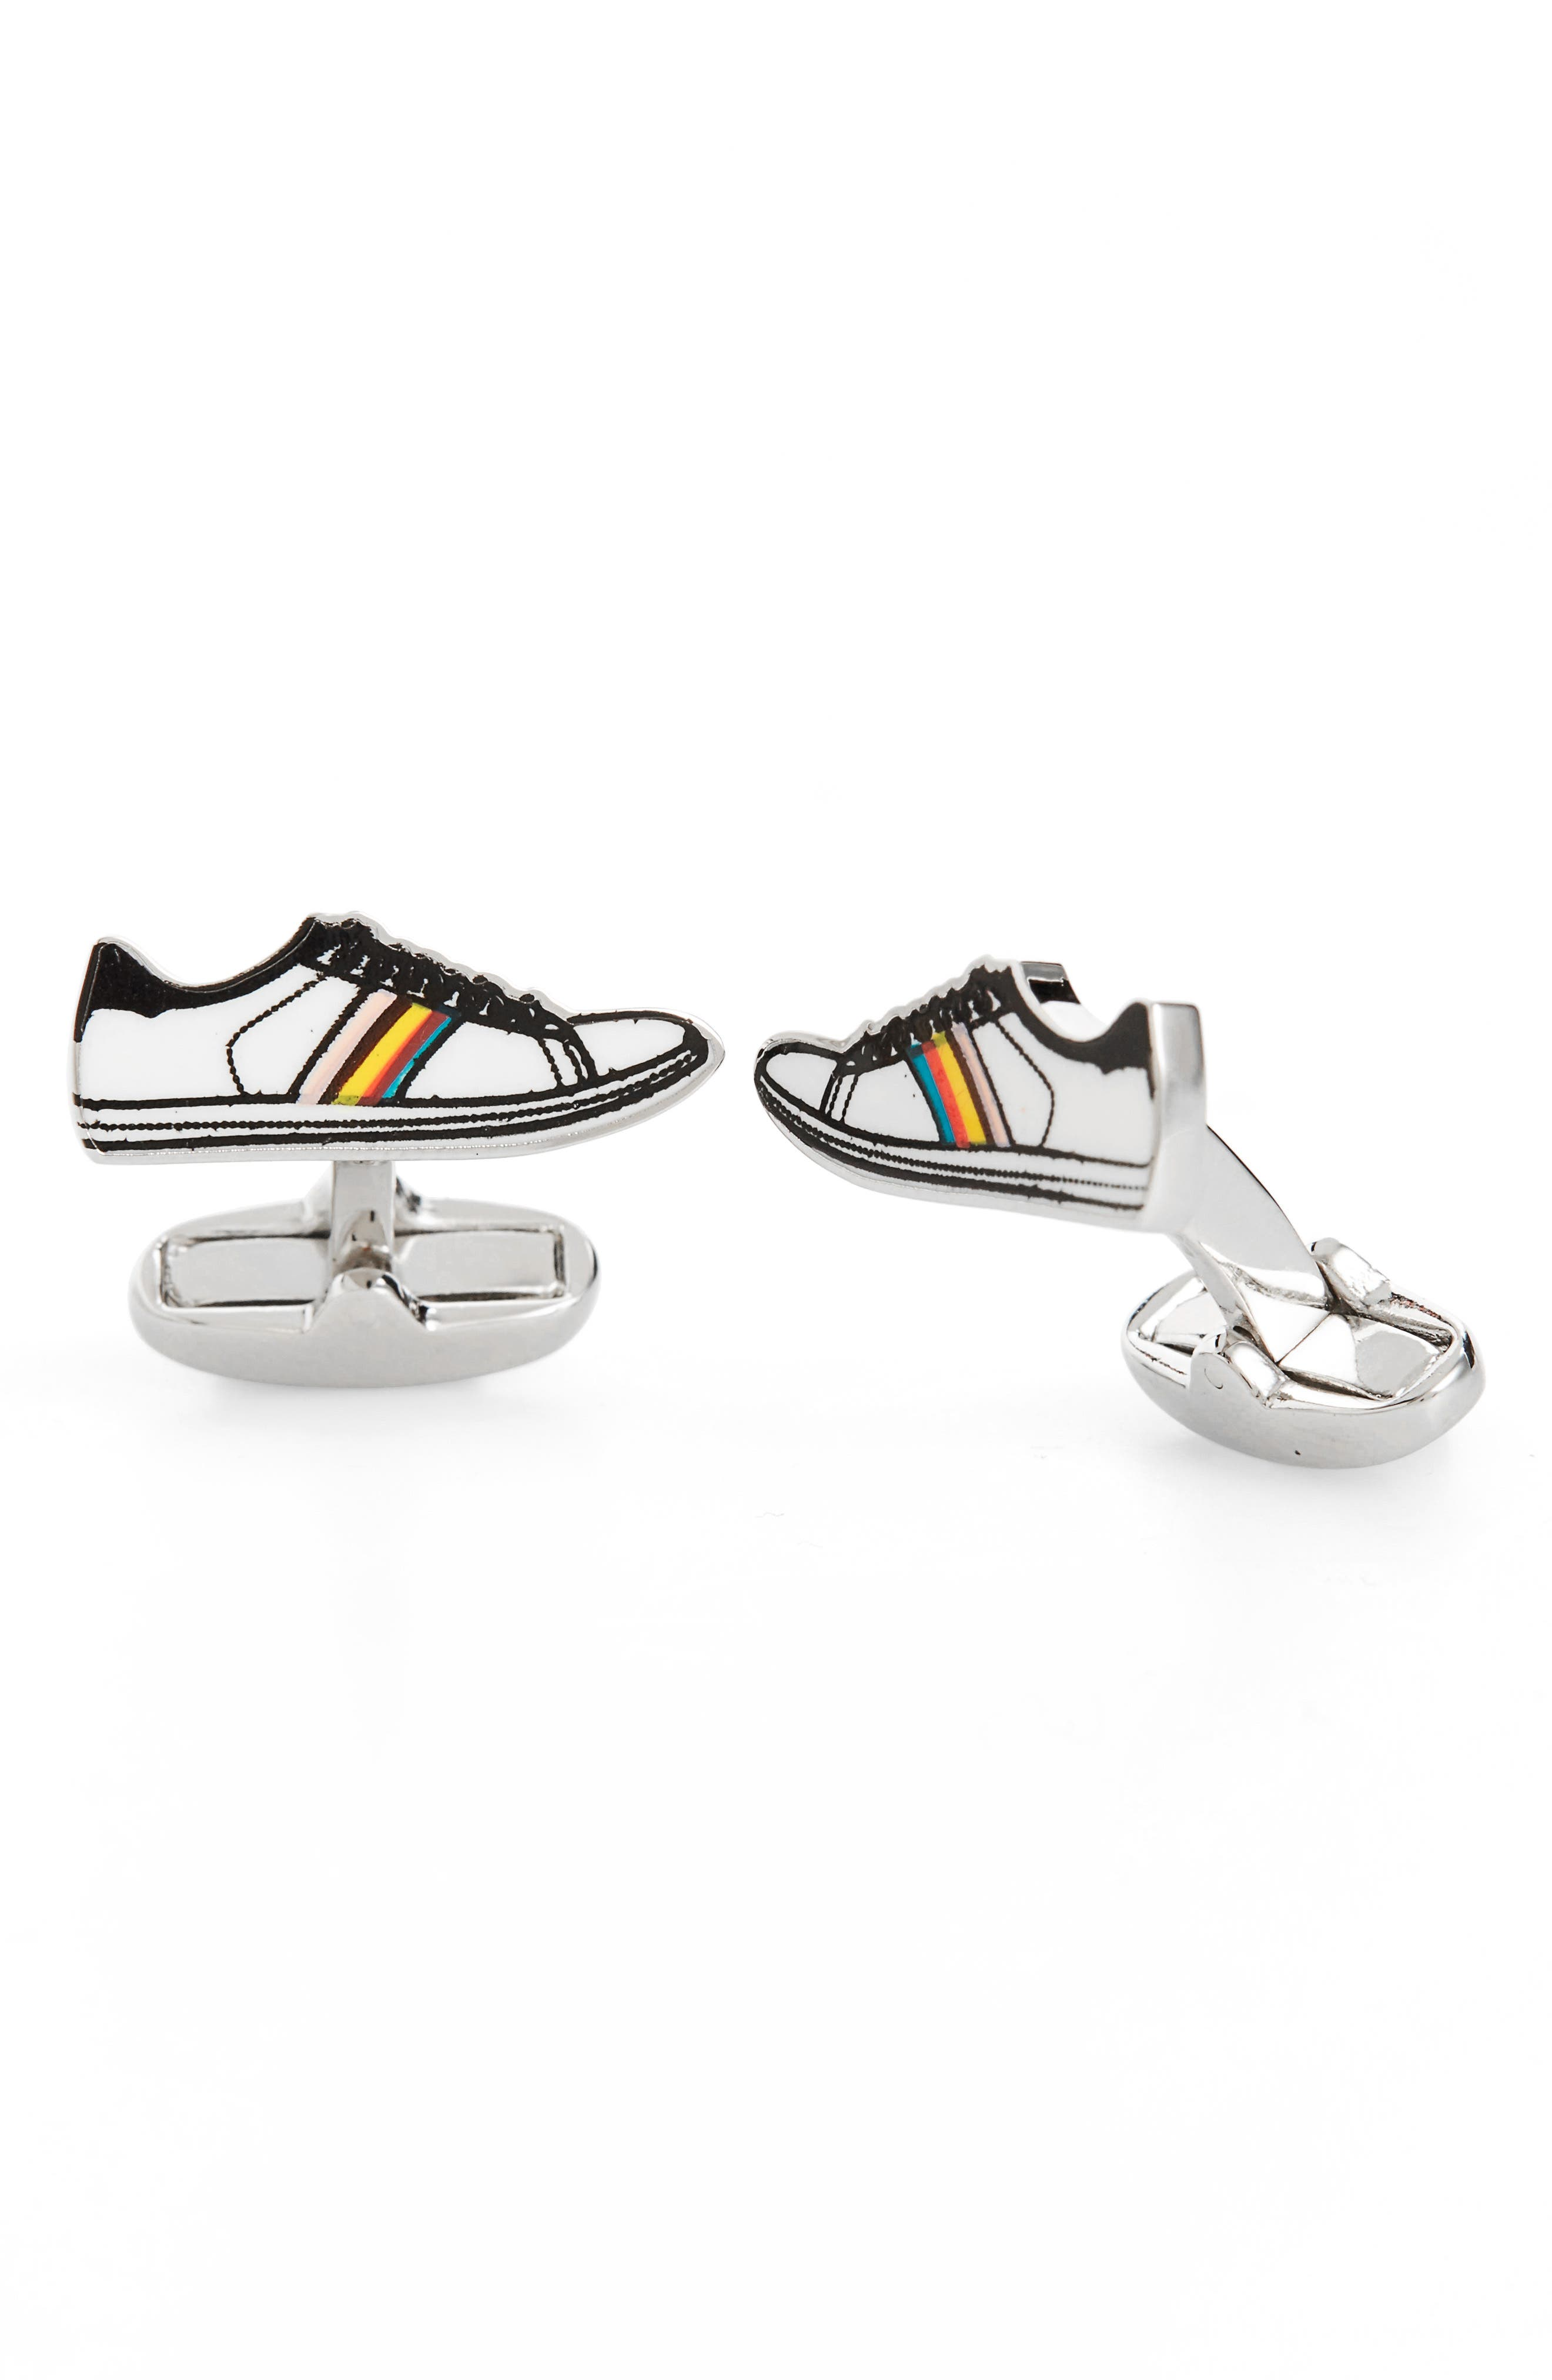 Trainer Cuff Links,                         Main,                         color, White